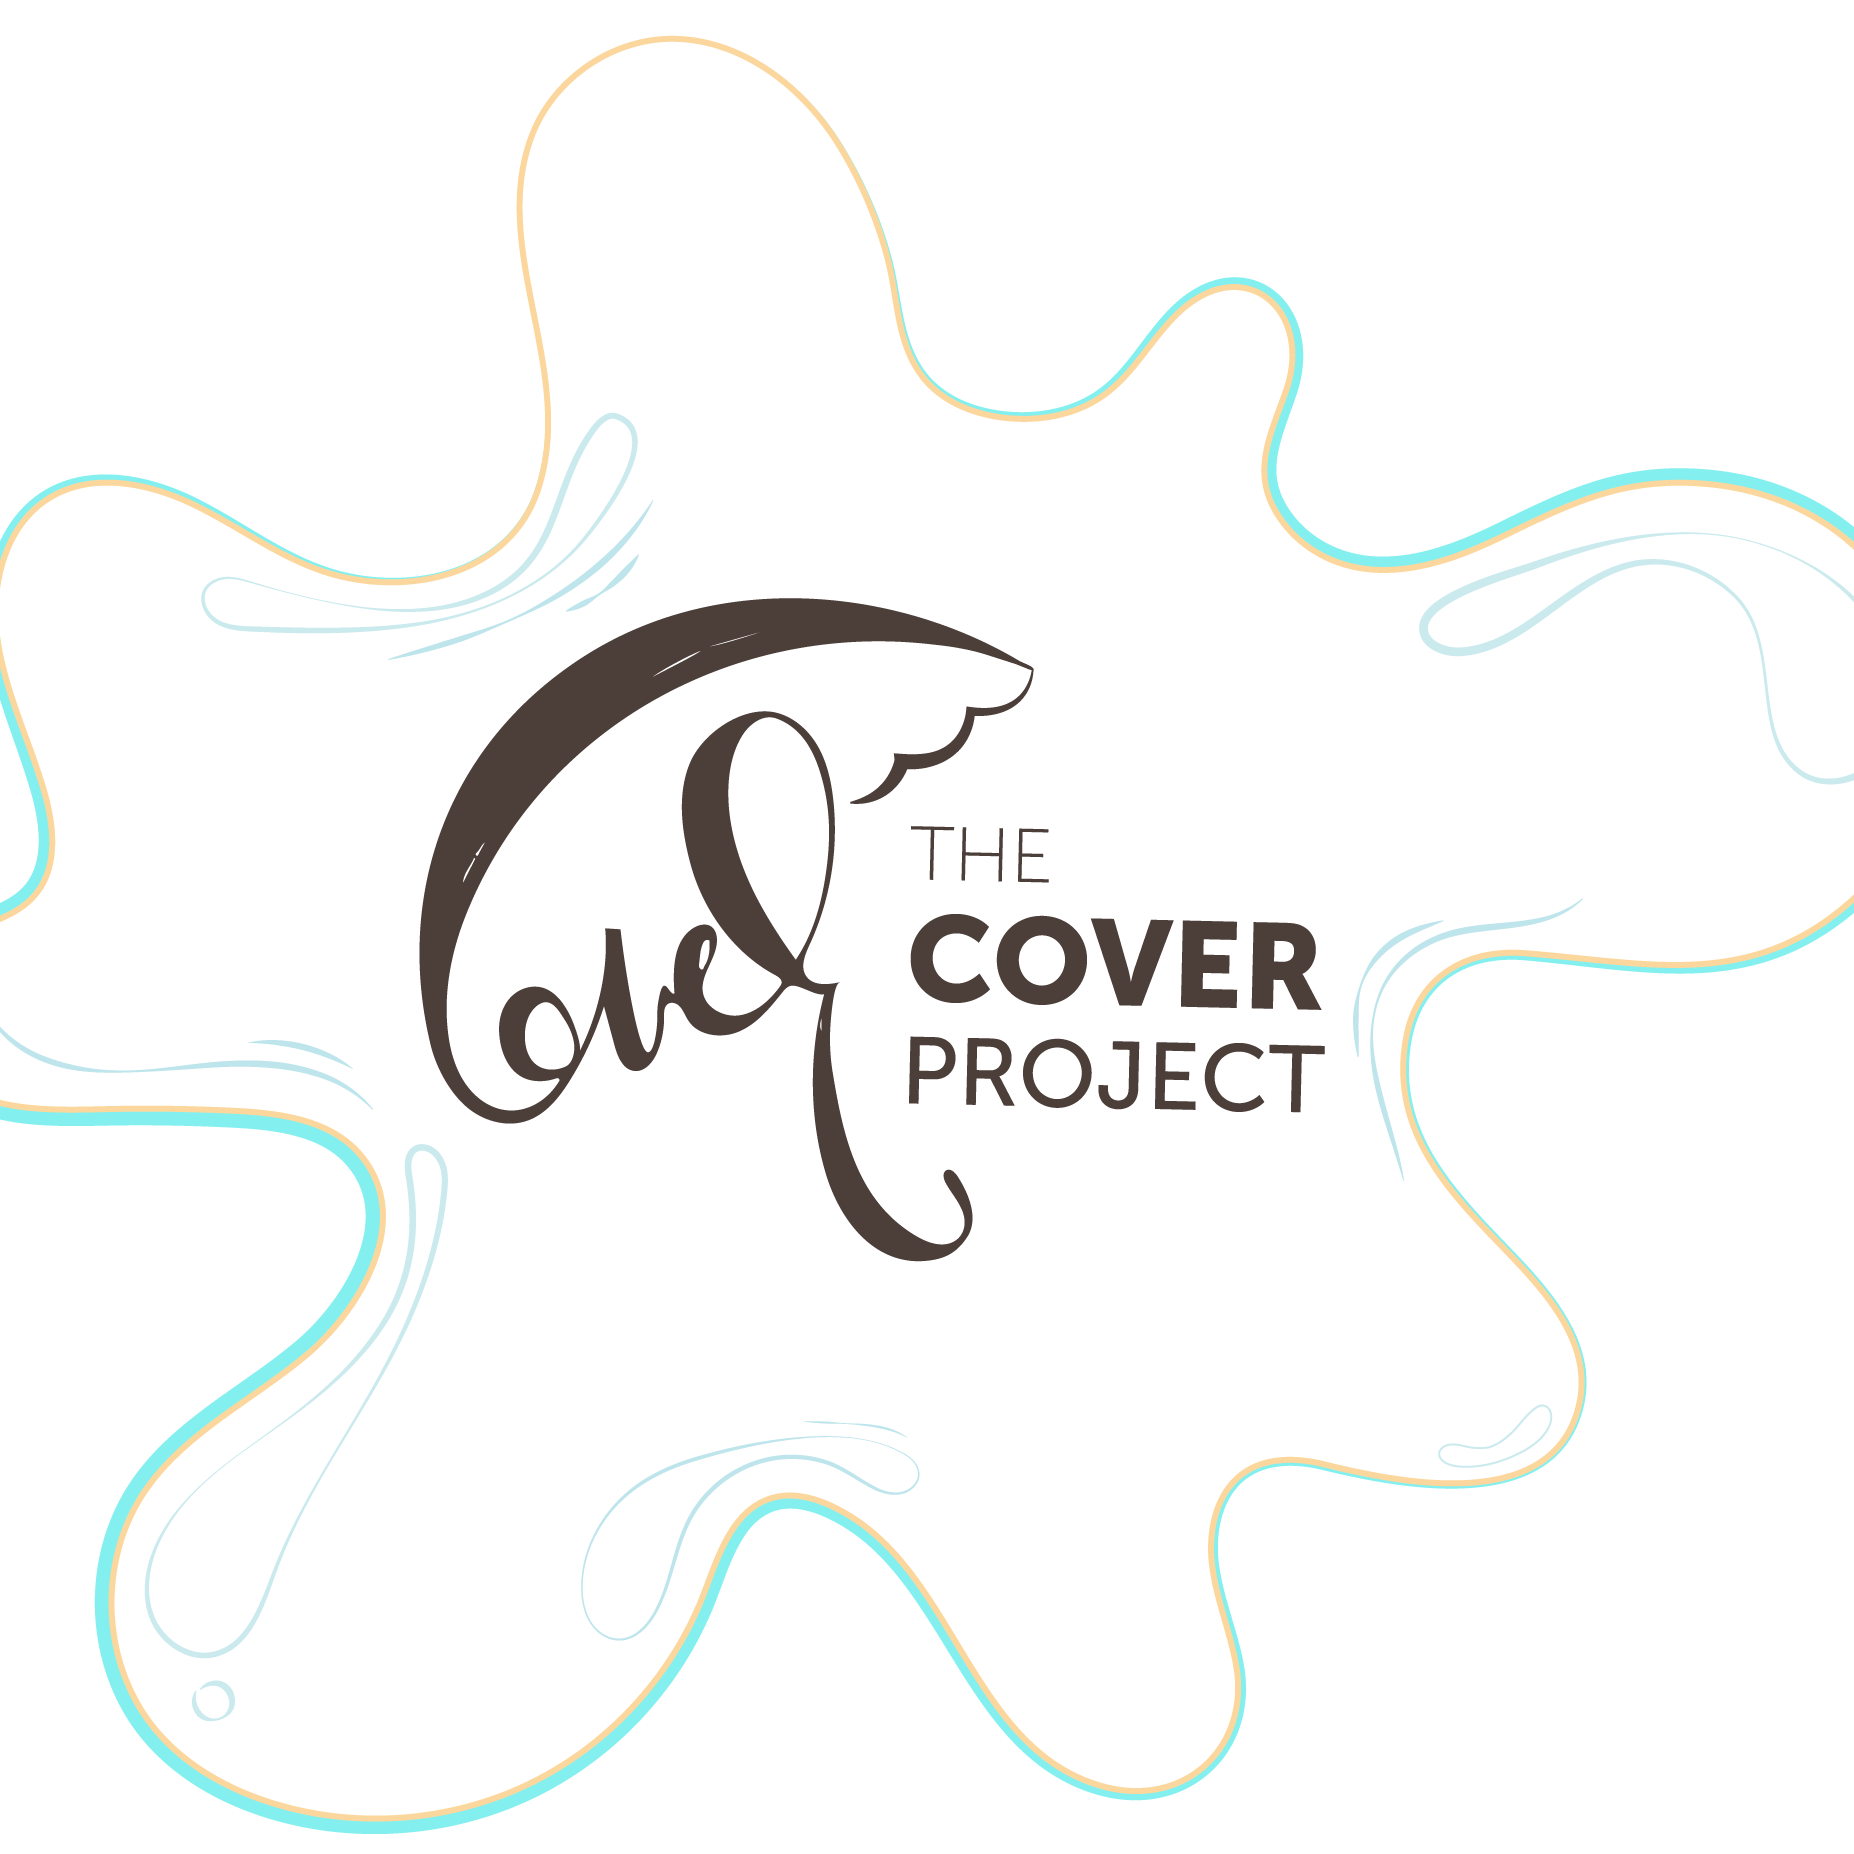 The Cover Project